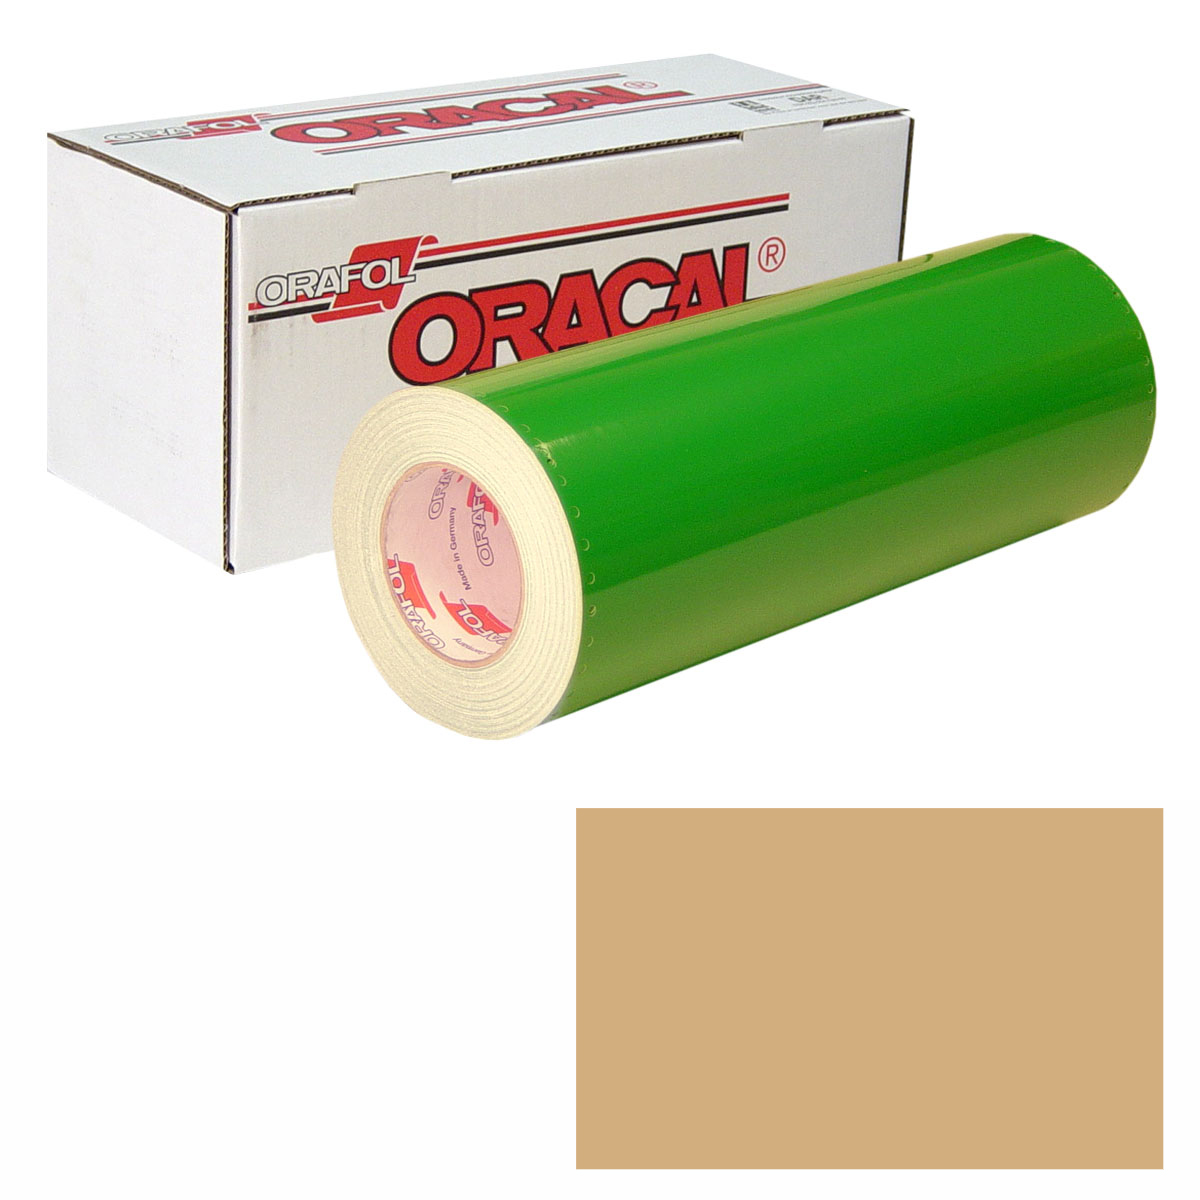 ORACAL 631 Unp 24In X 50Yd 081 Light Brown